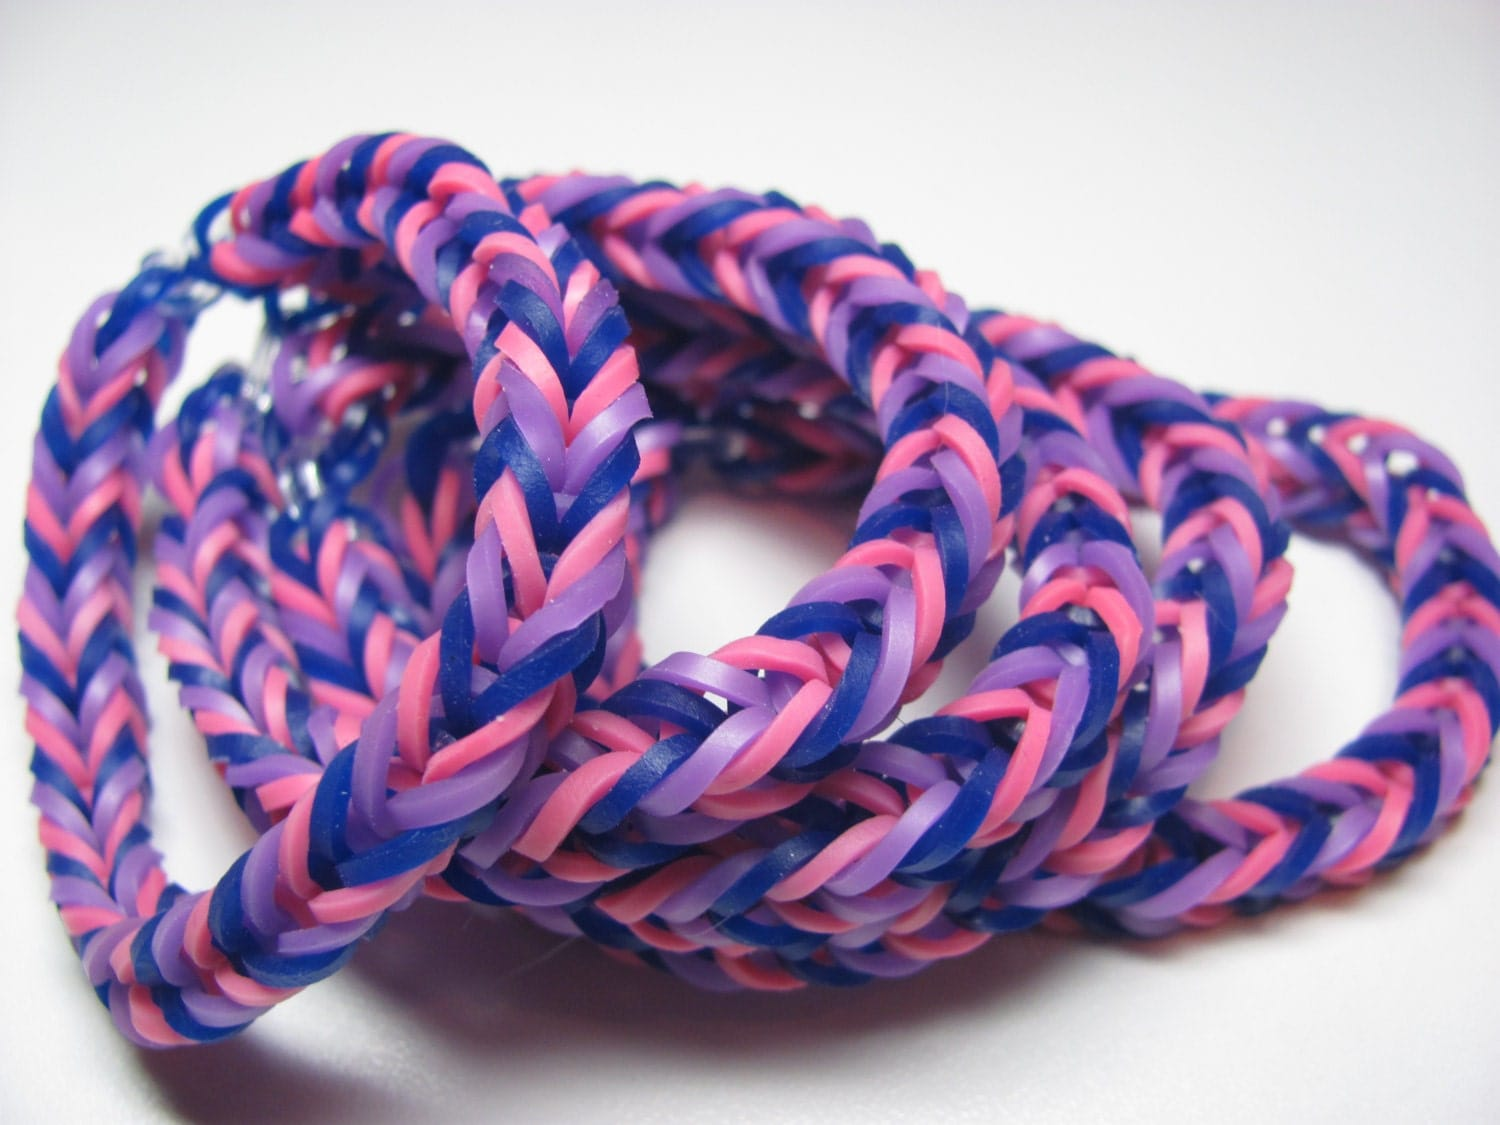 Bisexual Pride Bracelets Rainbow Loom Rubber Band Stretch